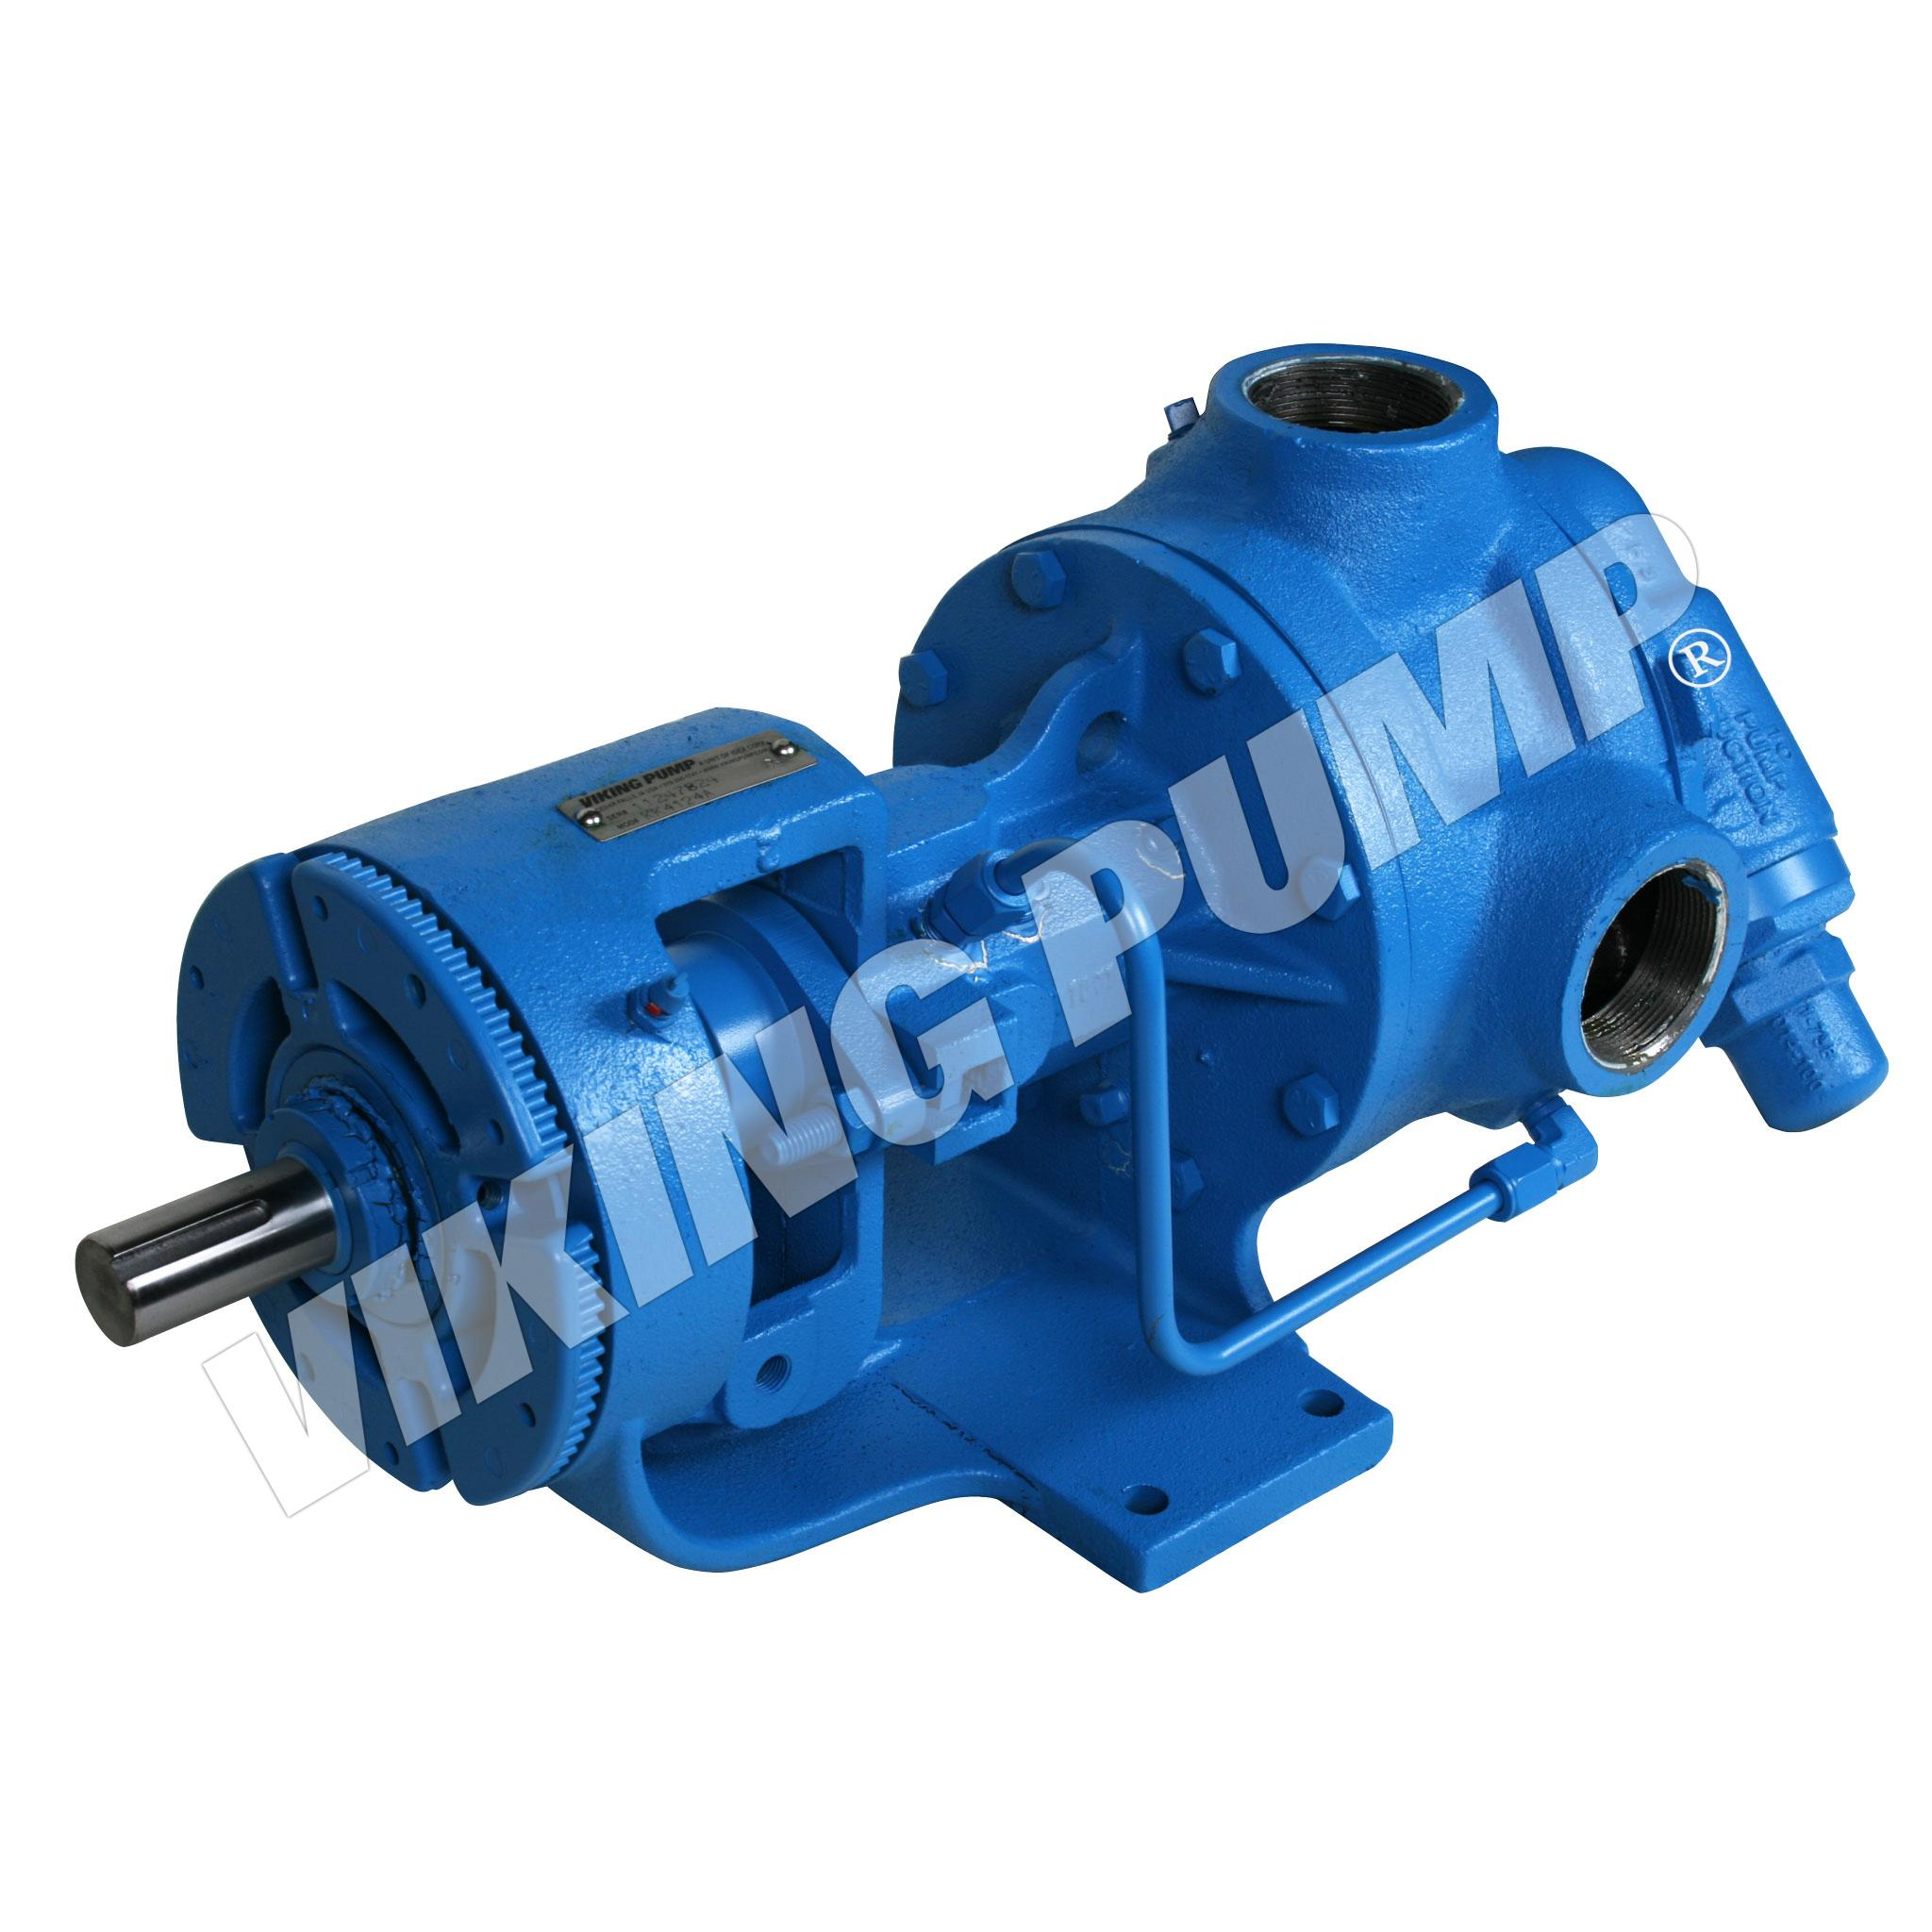 Model KK4126A, Foot Mounted, Mechanical Seal,  Relief Valve Pump